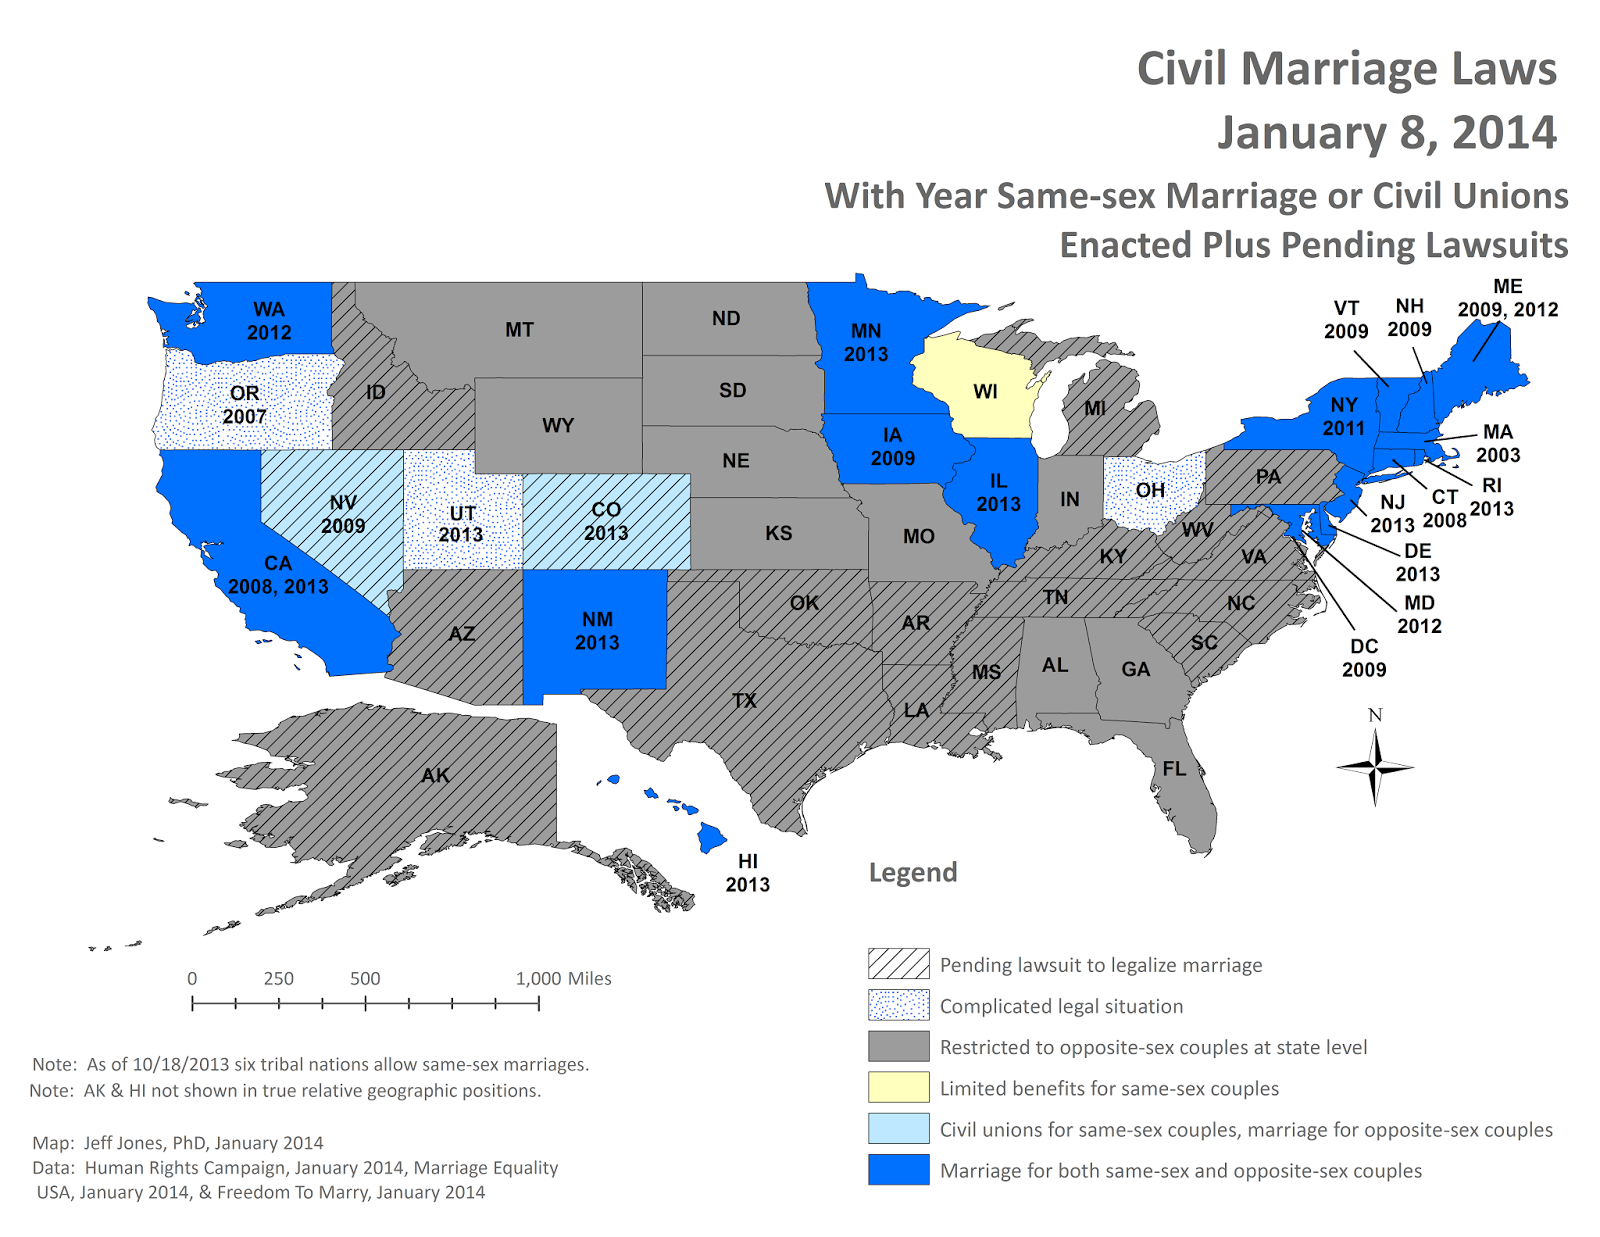 Middling America: January 2014 Status of Same- Marriage ... on 9gag map, modernism map, new moon map, lawyers map, love wins map, family interaction map, life calling map, metaphysical map, inbreeding map, long trip map, stages of life map, doctrine map, sovereignty map, heredity map, middle class map, numerology map, food issues map, addiction map, birth control map,